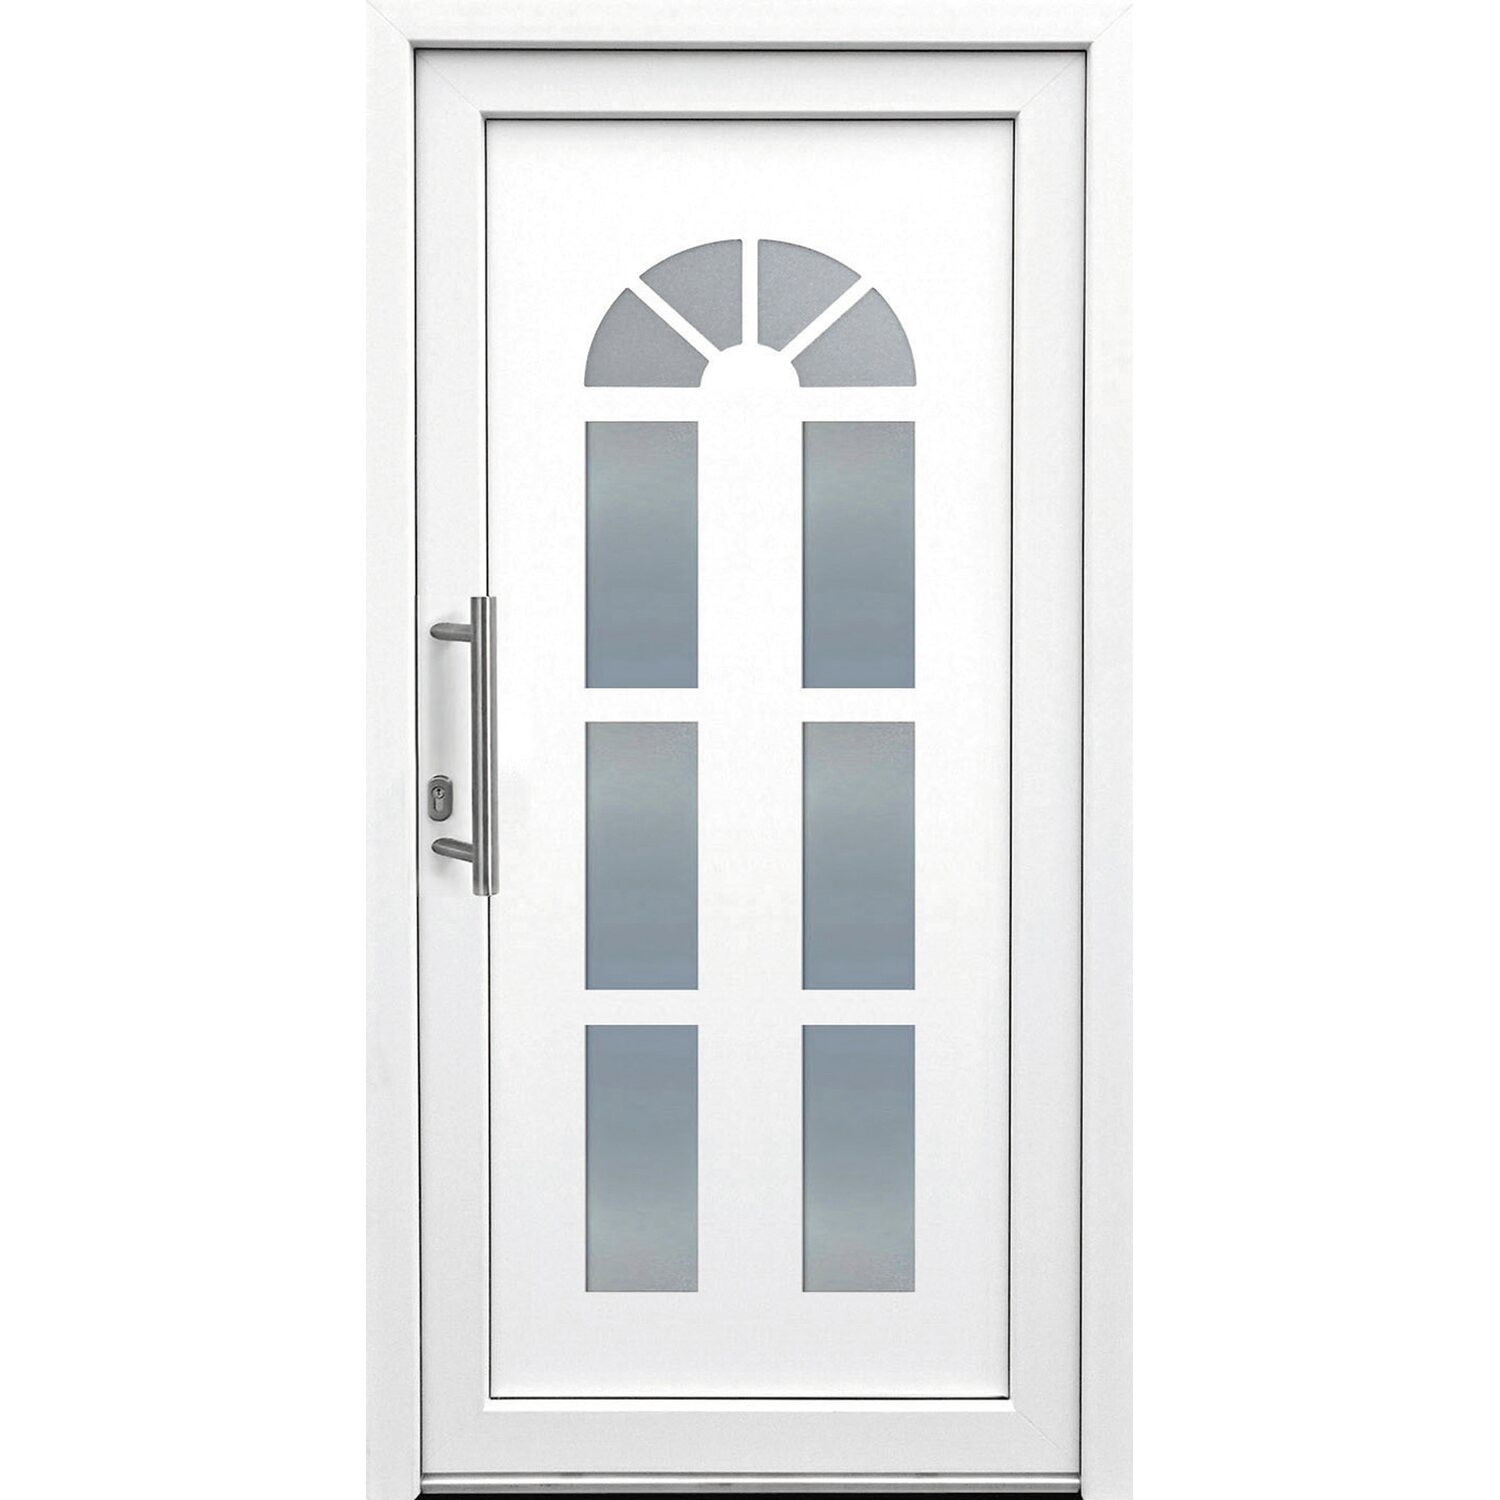 kunststoff haust r 110 cm x 210 cm k012 anschlag links wei kaufen bei obi. Black Bedroom Furniture Sets. Home Design Ideas